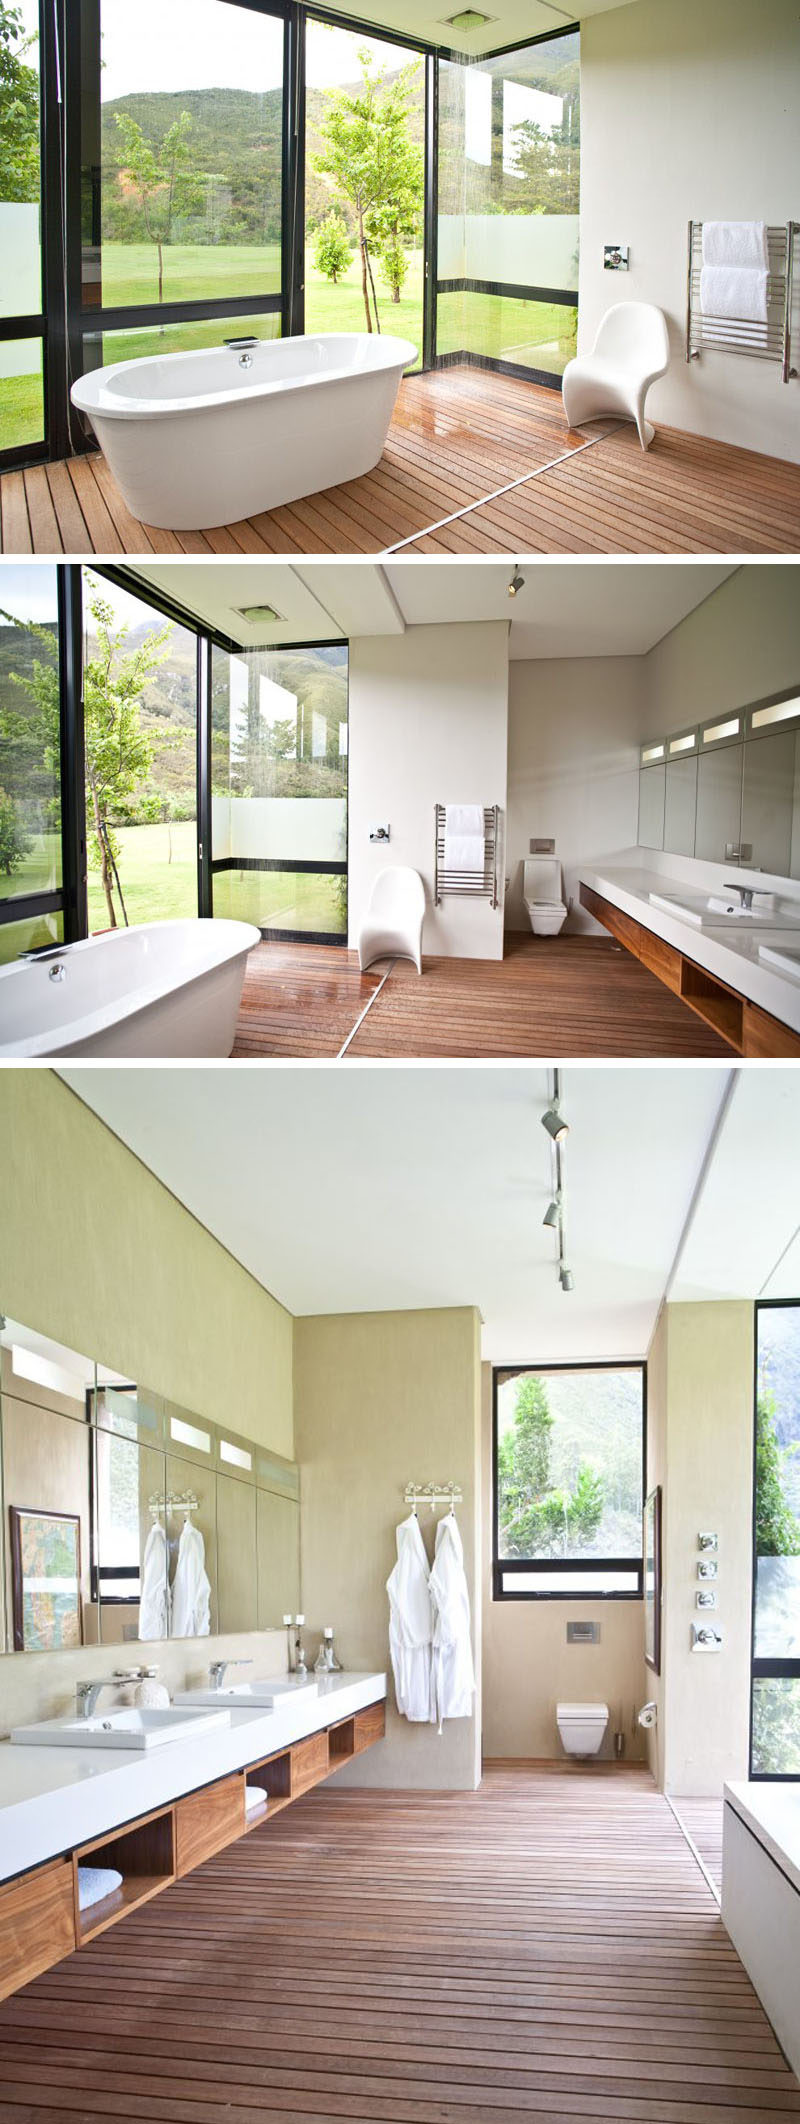 Bathroom Design Idea - Create a Spa-Like Bathroom At Home // Install a rainfall shower head.